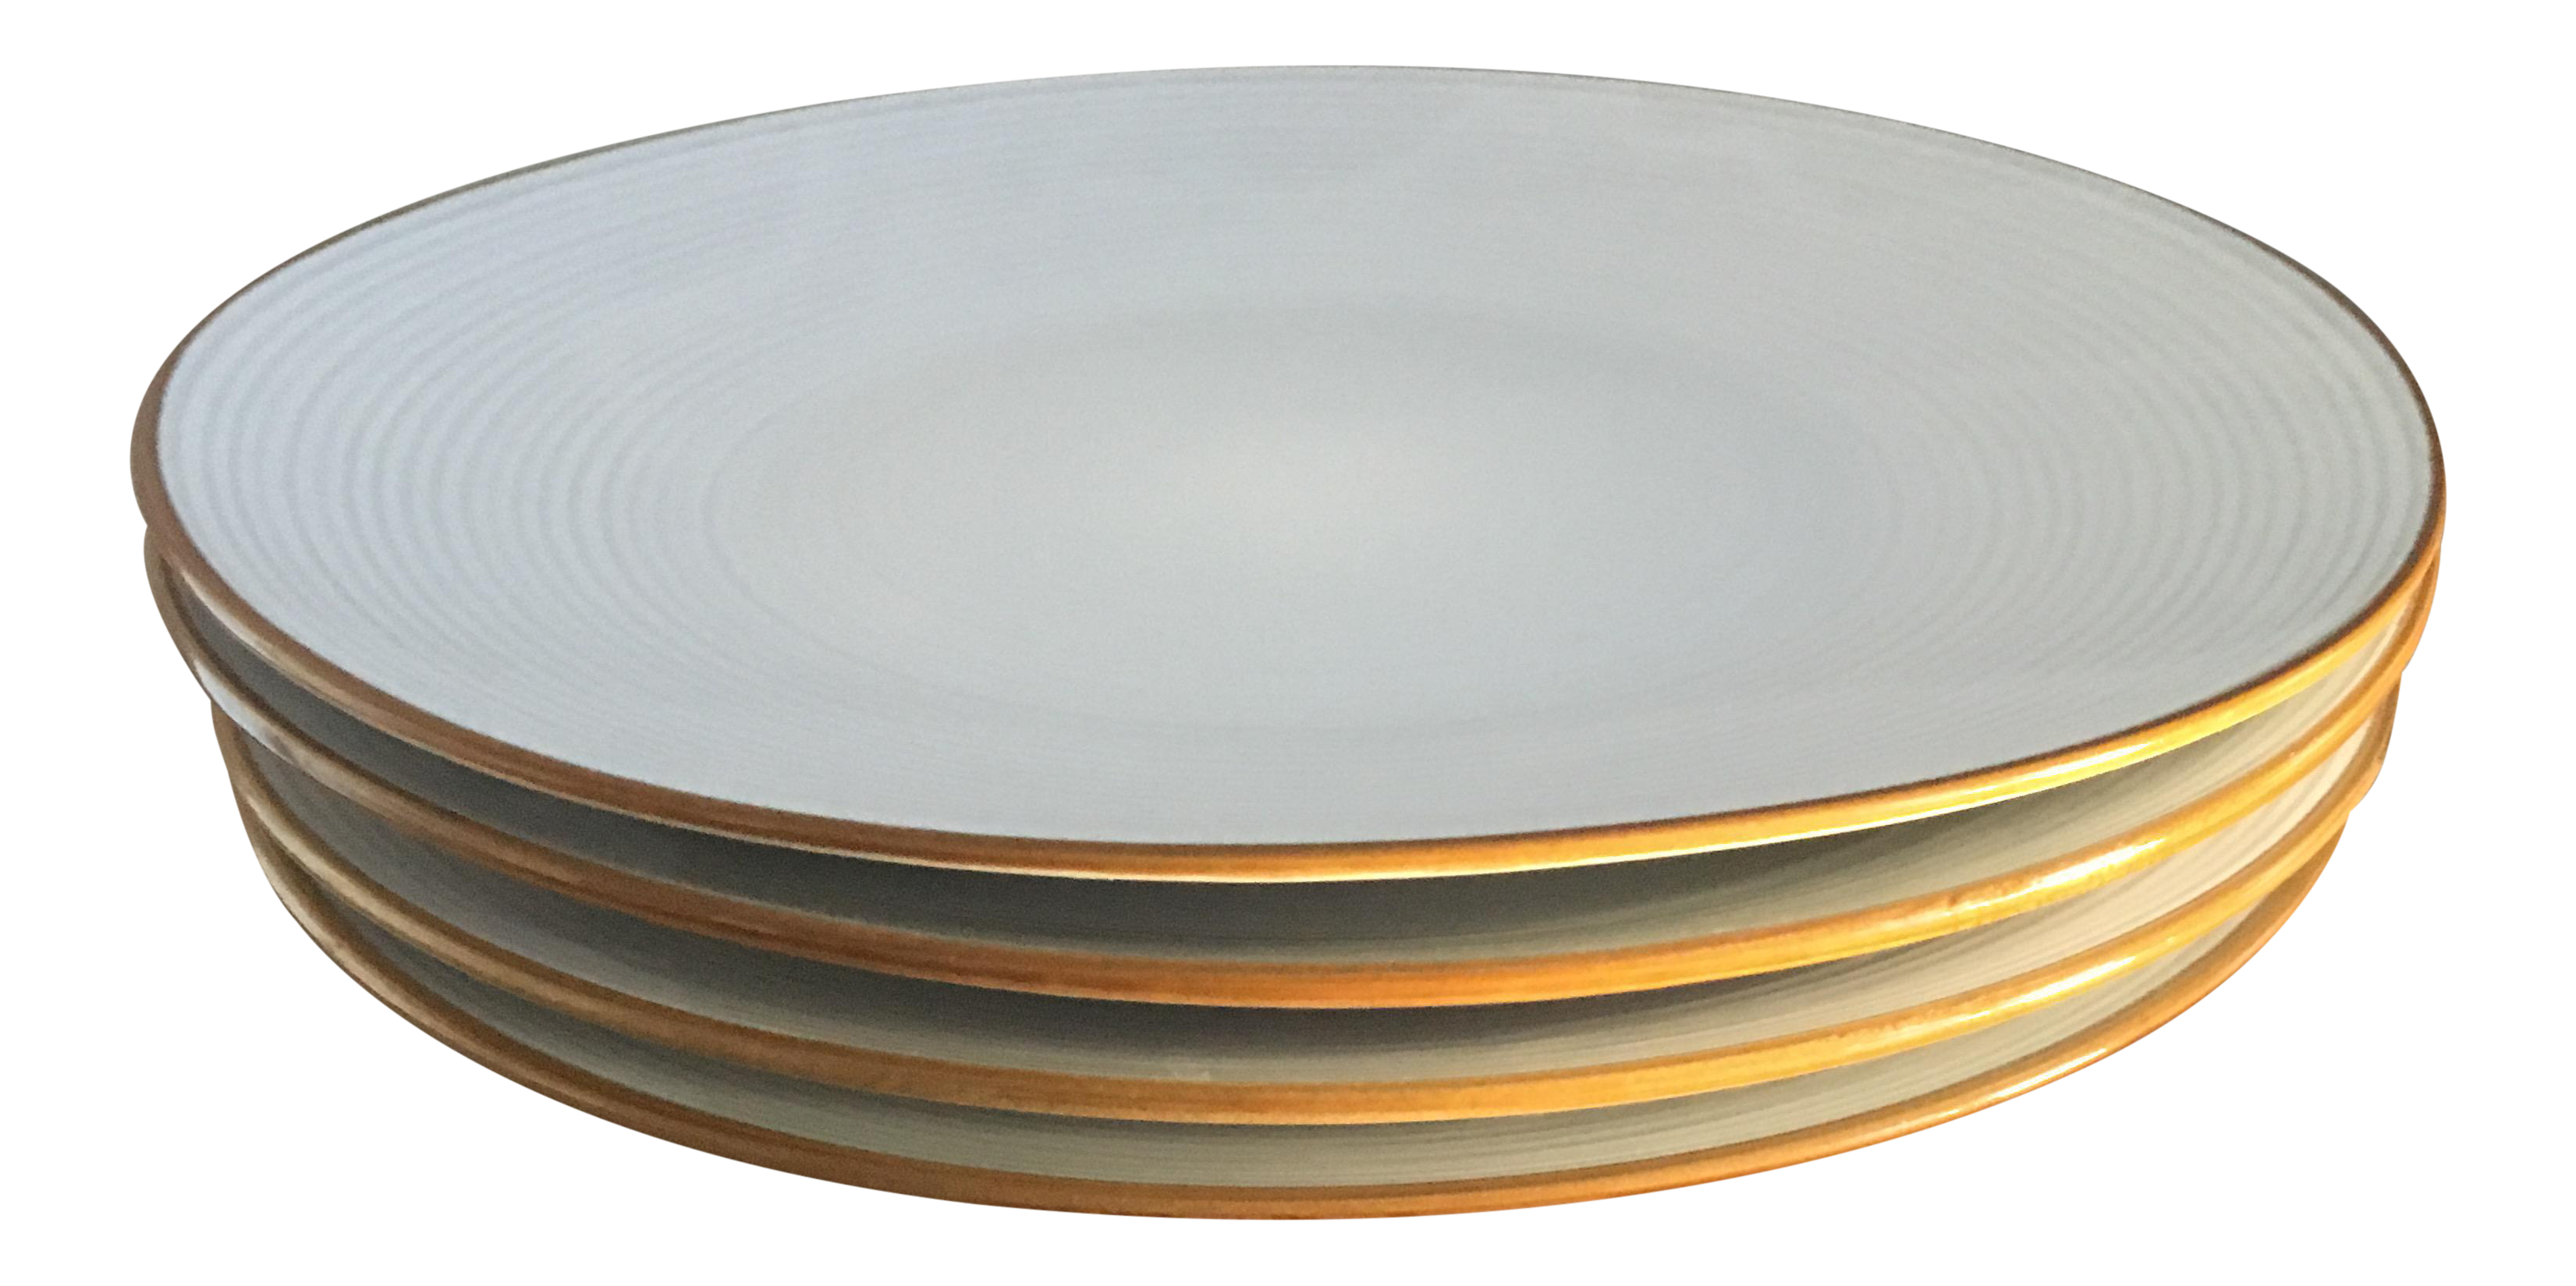 Thomas O\u0027Brien Vintage Modern Dinner Plates - Set of 4  sc 1 st  Chairish & Thomas O\u0027Brien Vintage Modern Dinner Plates - Set of 4 | Chairish